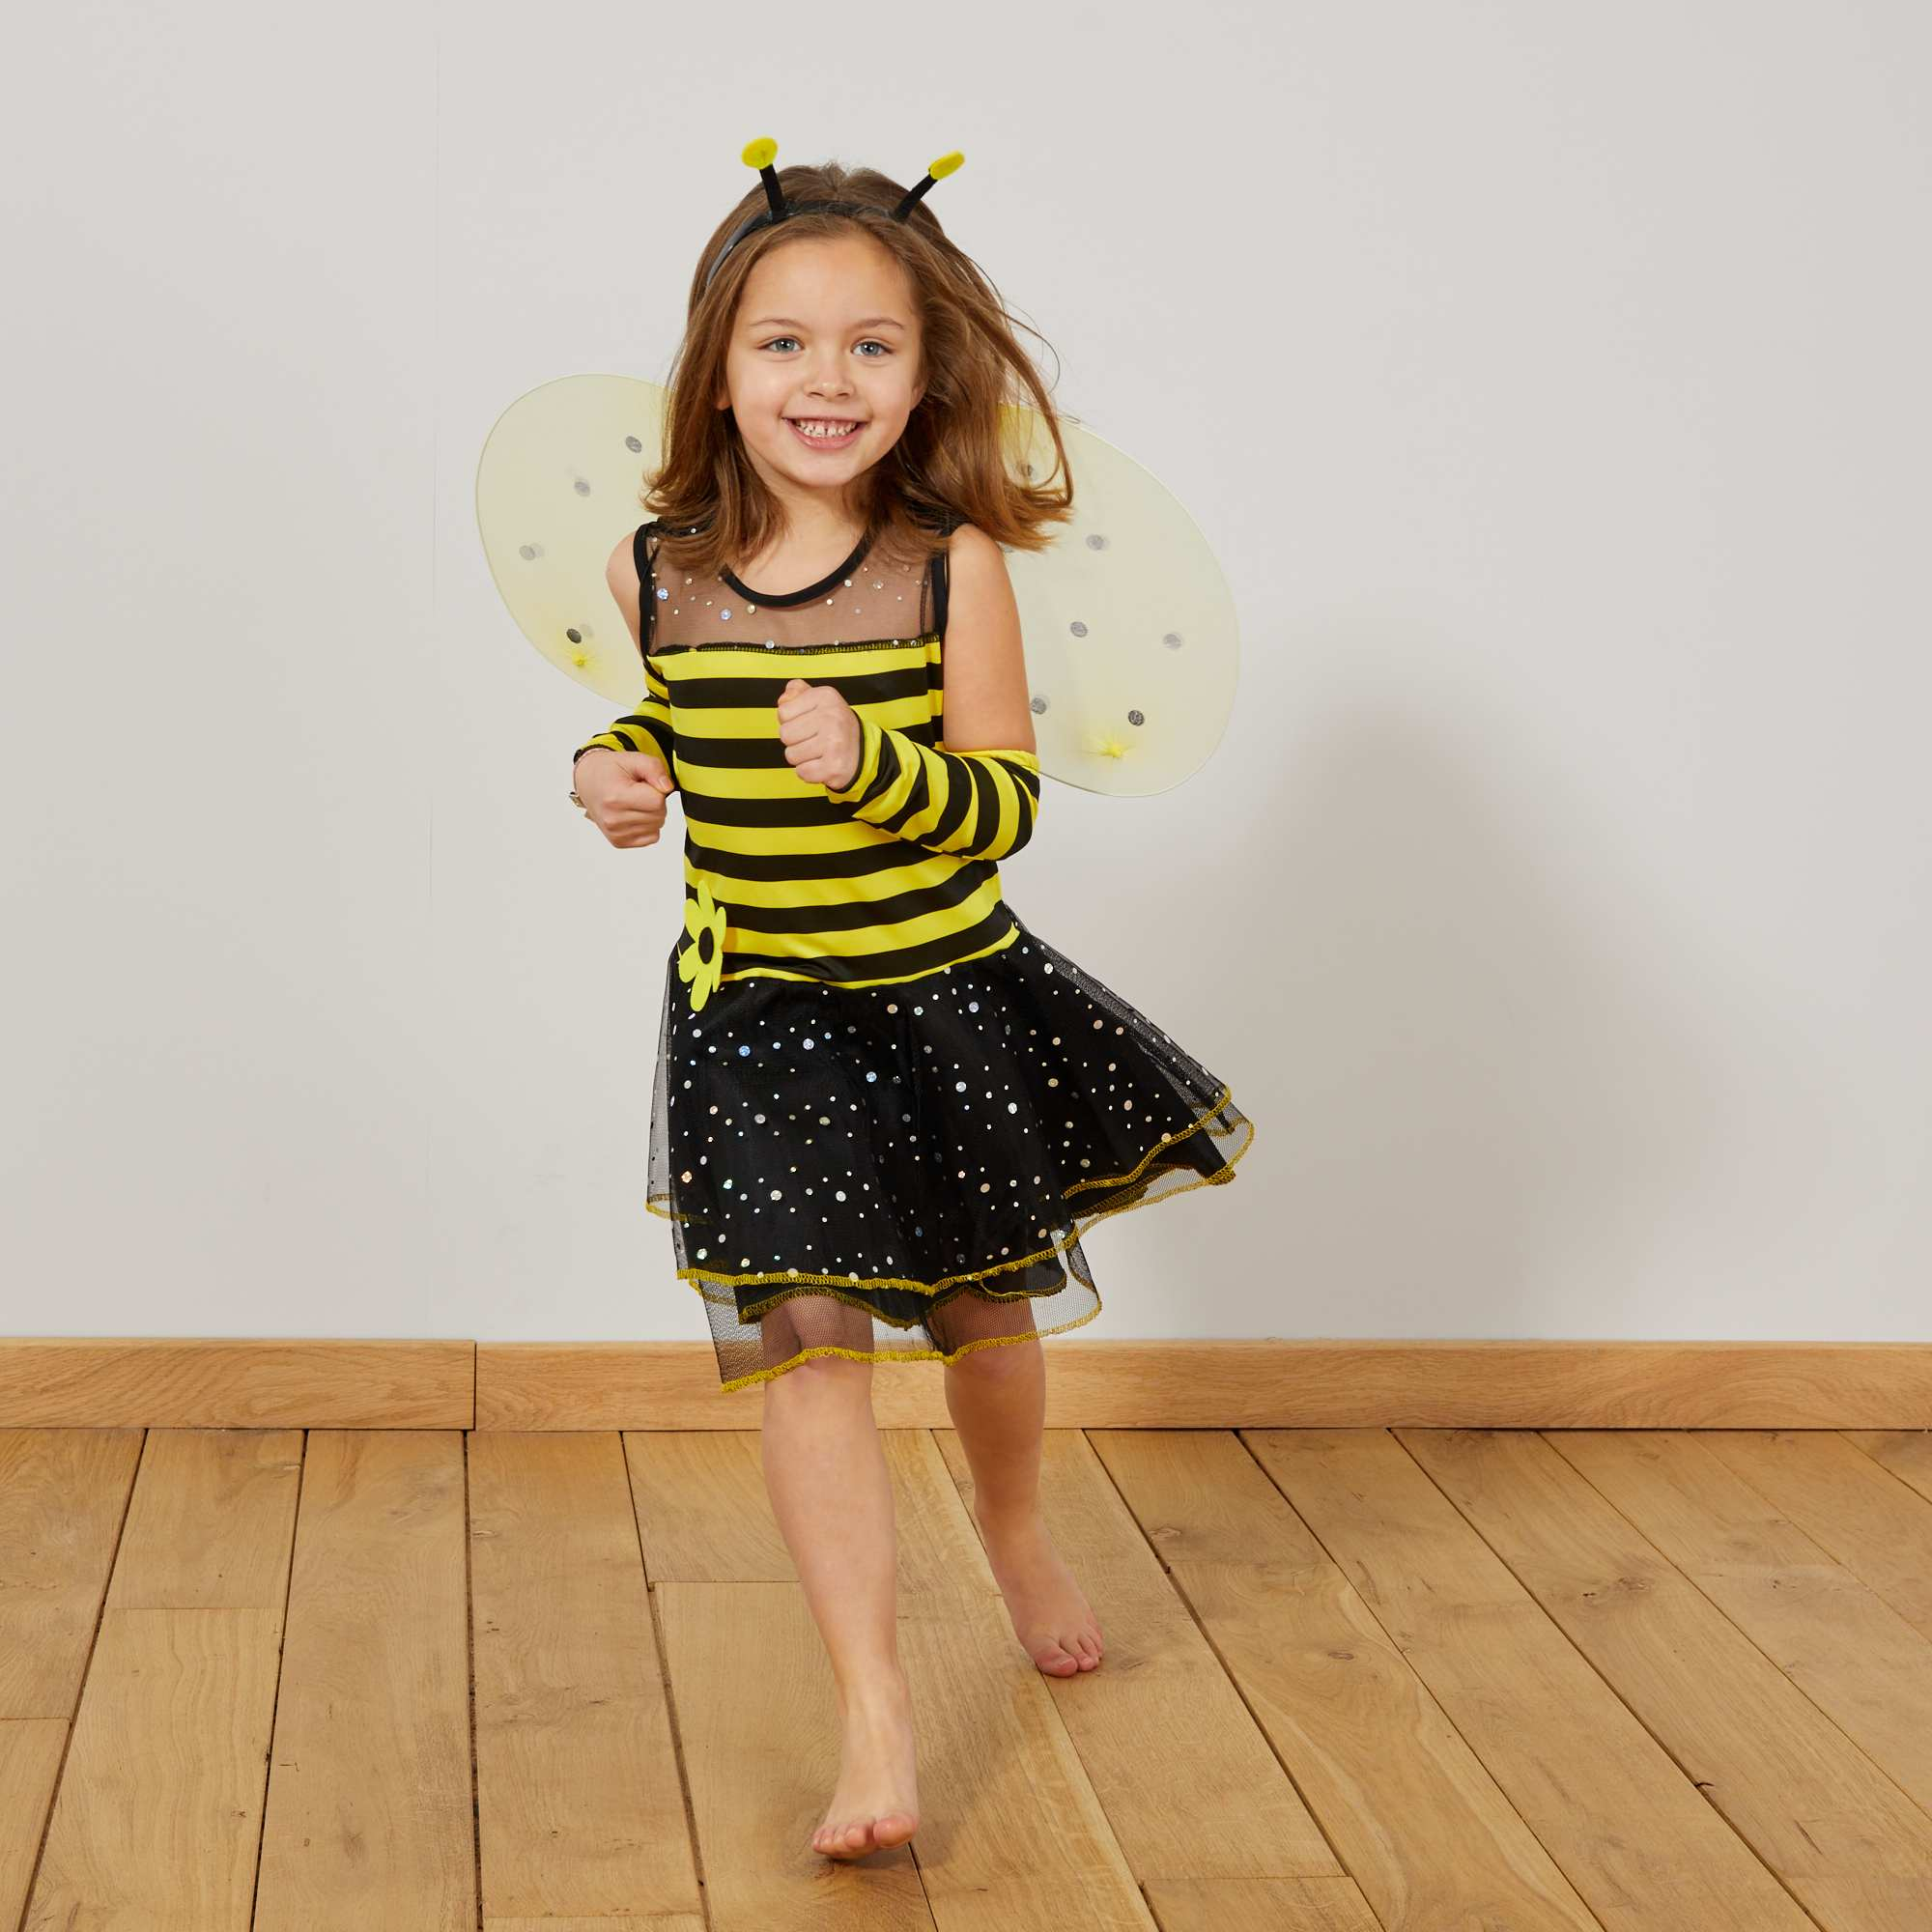 d guisement abeille fille enfant jaune kiabi 20 00. Black Bedroom Furniture Sets. Home Design Ideas